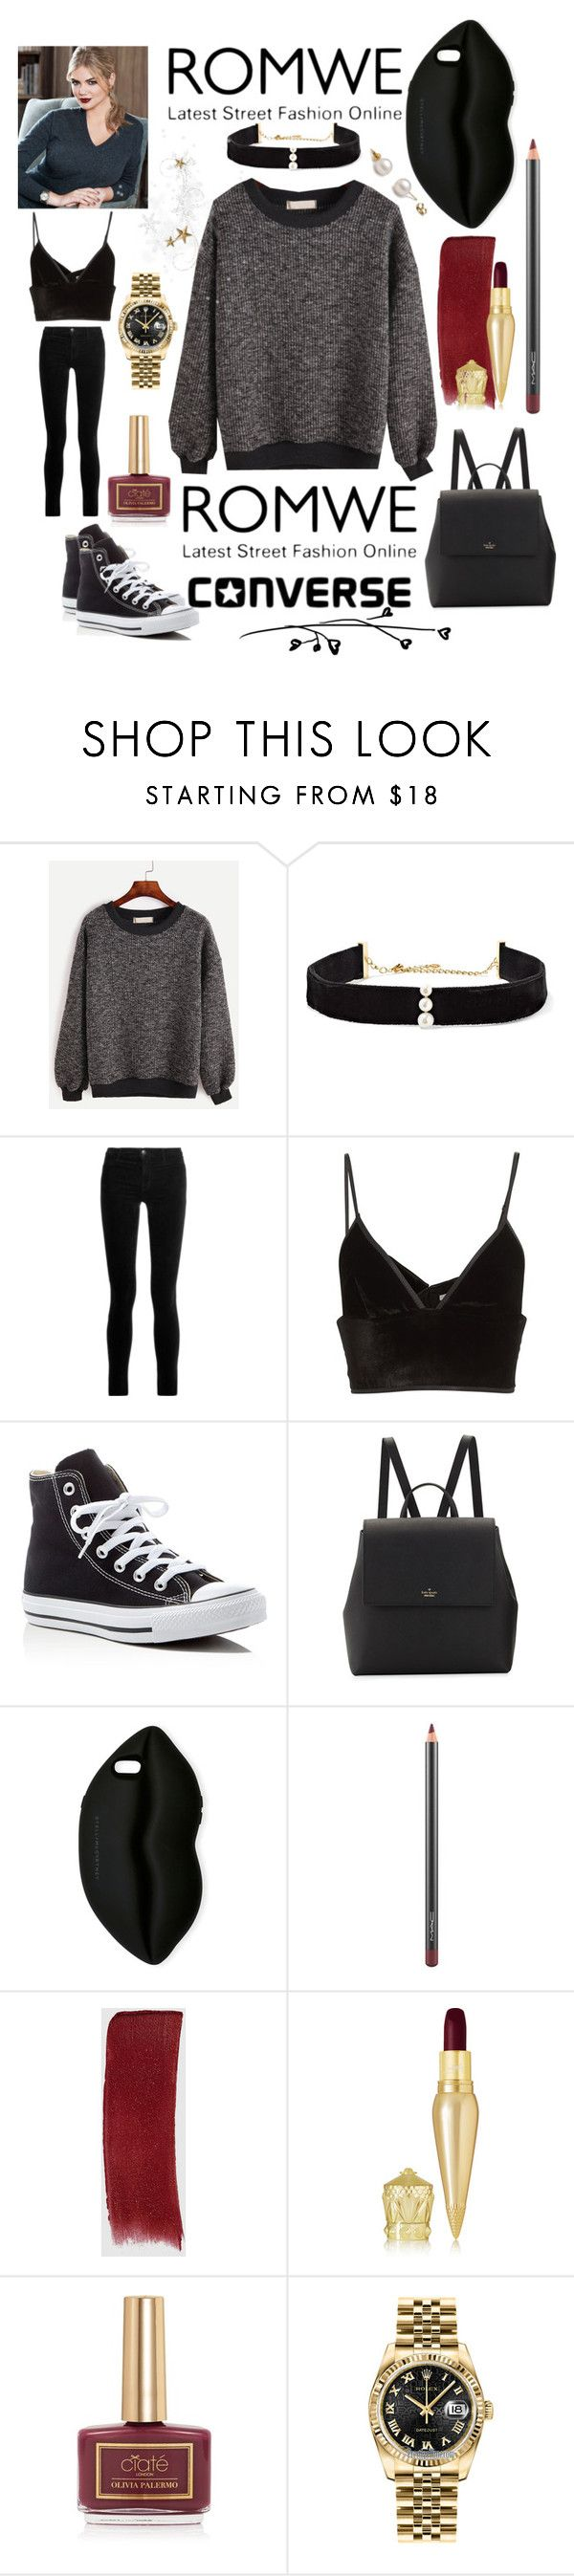 """ROMWE: Win! Contrast Trim Ribbed Sweatshirt"" by mandimwpink ❤ liked on Polyvore featuring Anissa Kermiche, J Brand, Alexander Wang, Converse, Kate Spade, STELLA McCARTNEY, MAC Cosmetics, Gucci, Christian Louboutin and Ciaté"